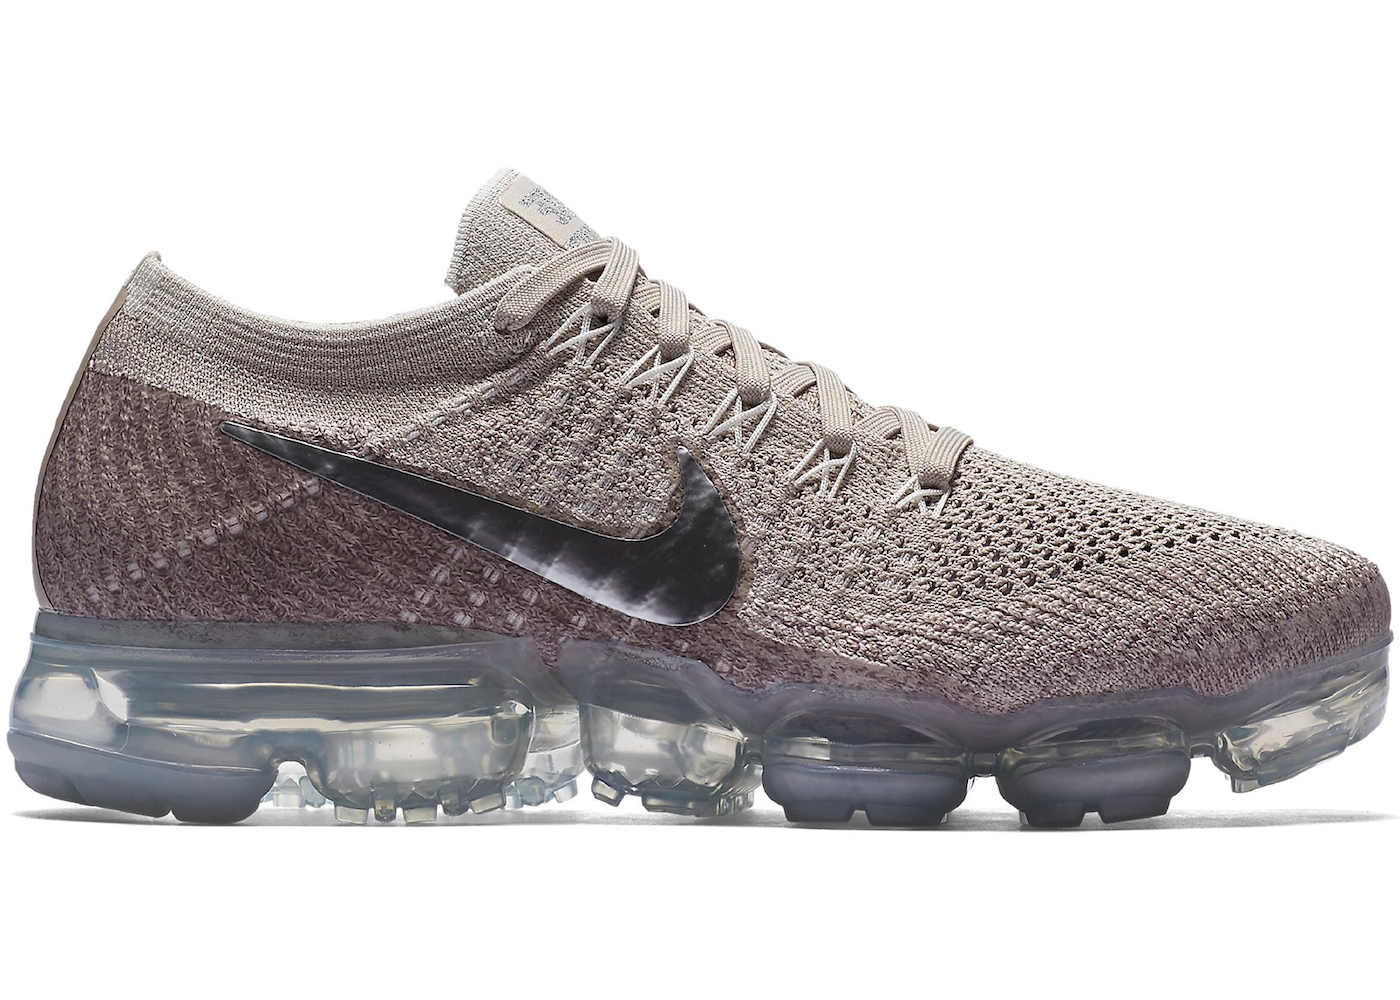 timeless design f442c 1257c Cheap Nike Air VaporMax With Gold Design Image Leak